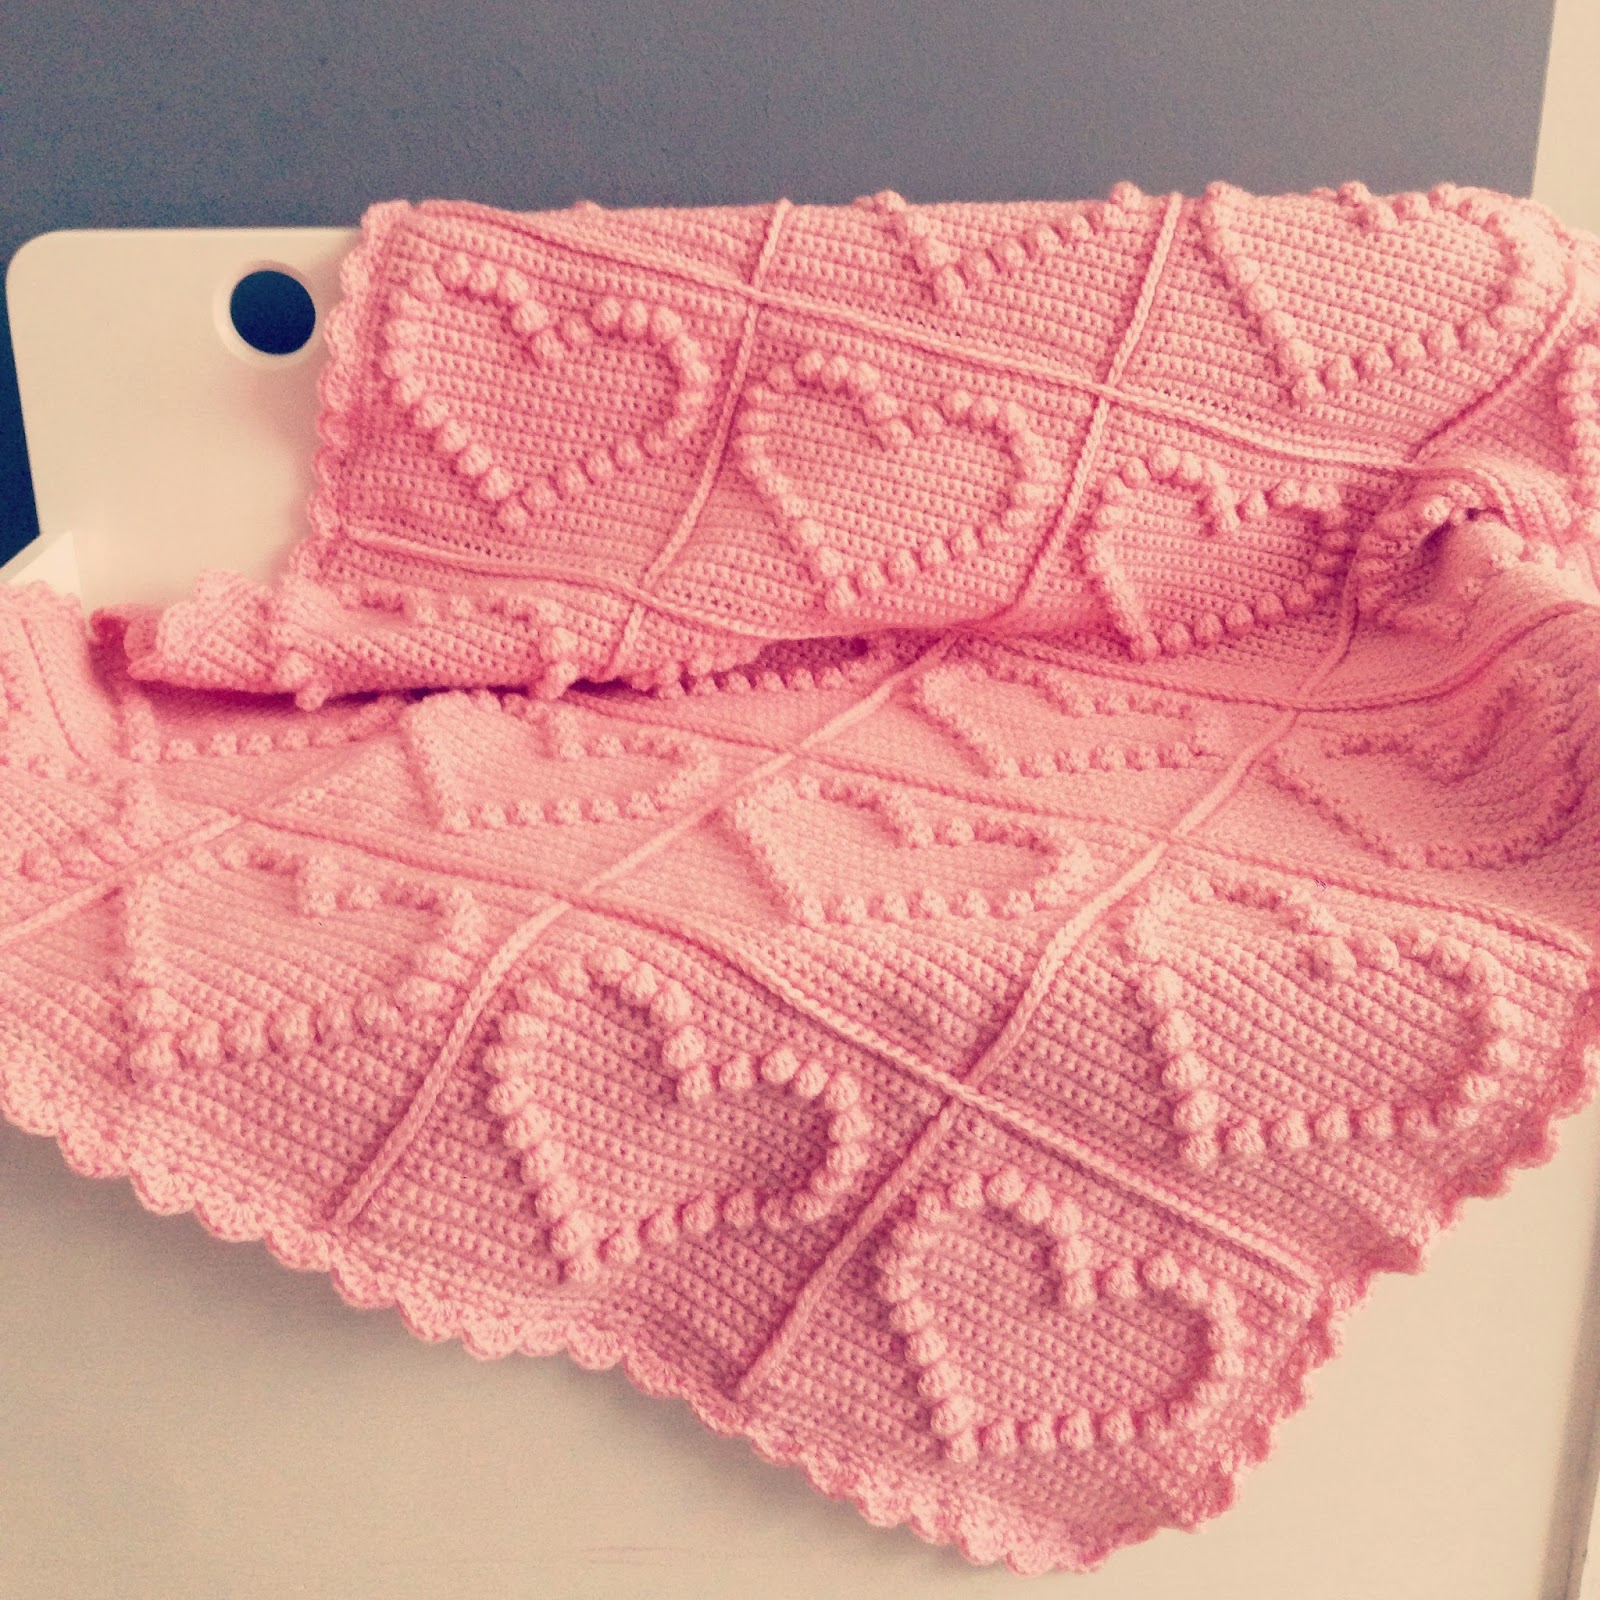 Knitting Pattern For Popcorn Baby Blanket : Angels handmade: Bobble heart blanket + vertaald patroon